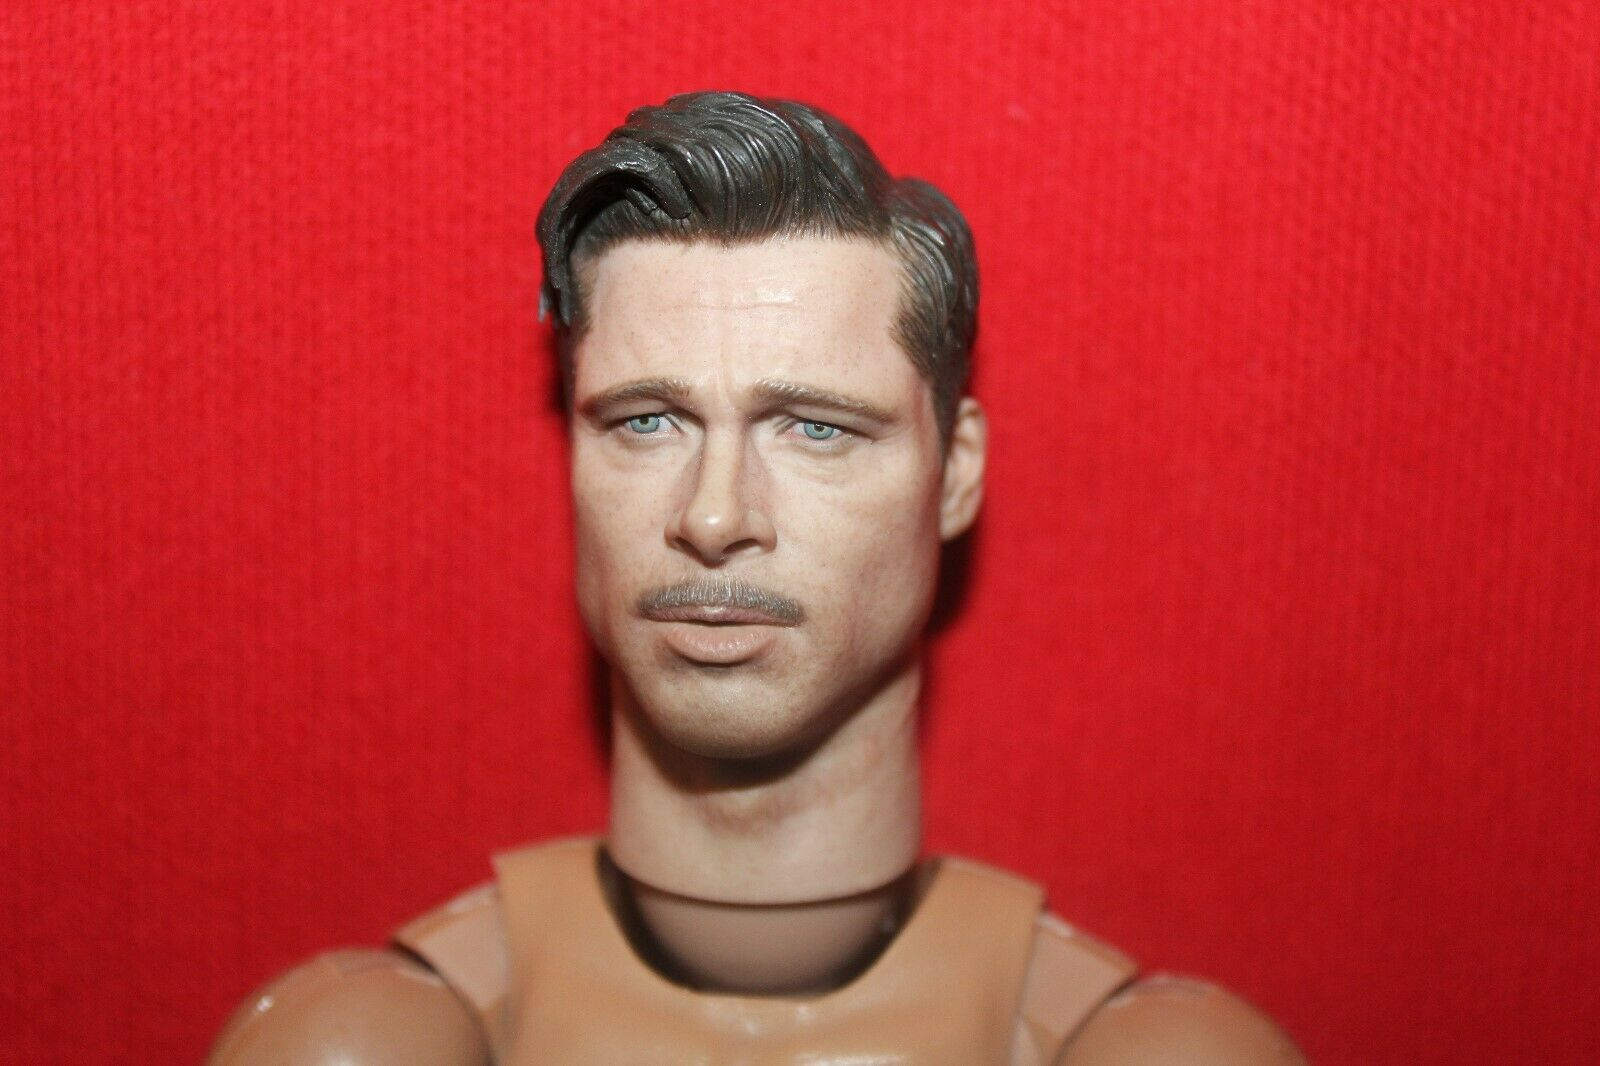 HOT TOYS 1 6TH escala da lugar figura desnuda Aldo Raine